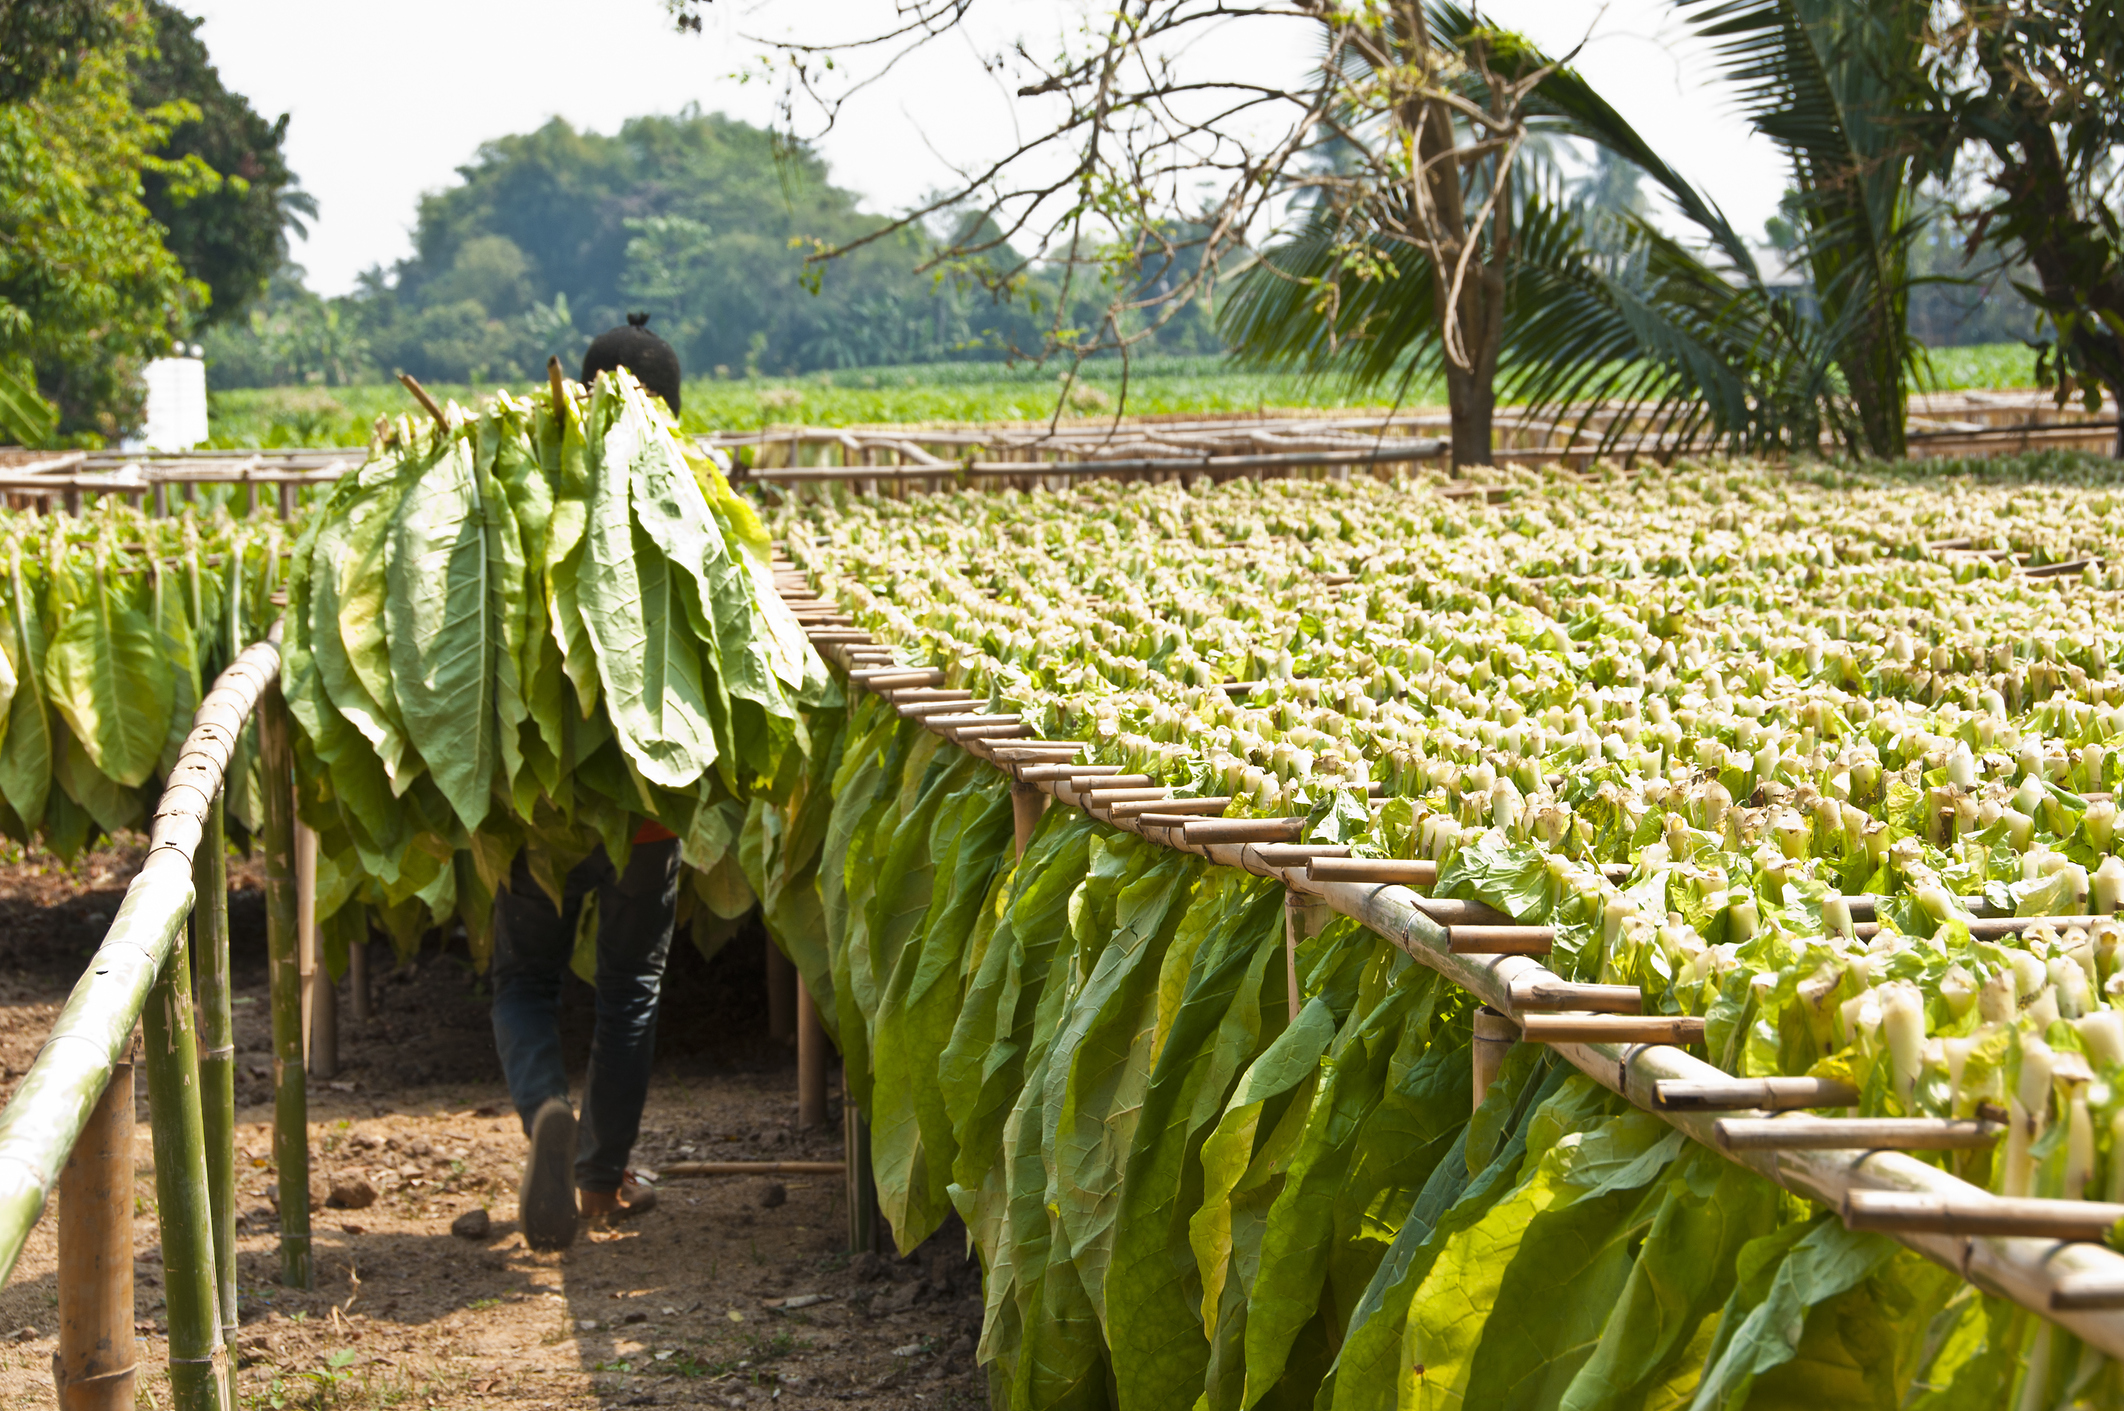 Drying Tobacco Leaf